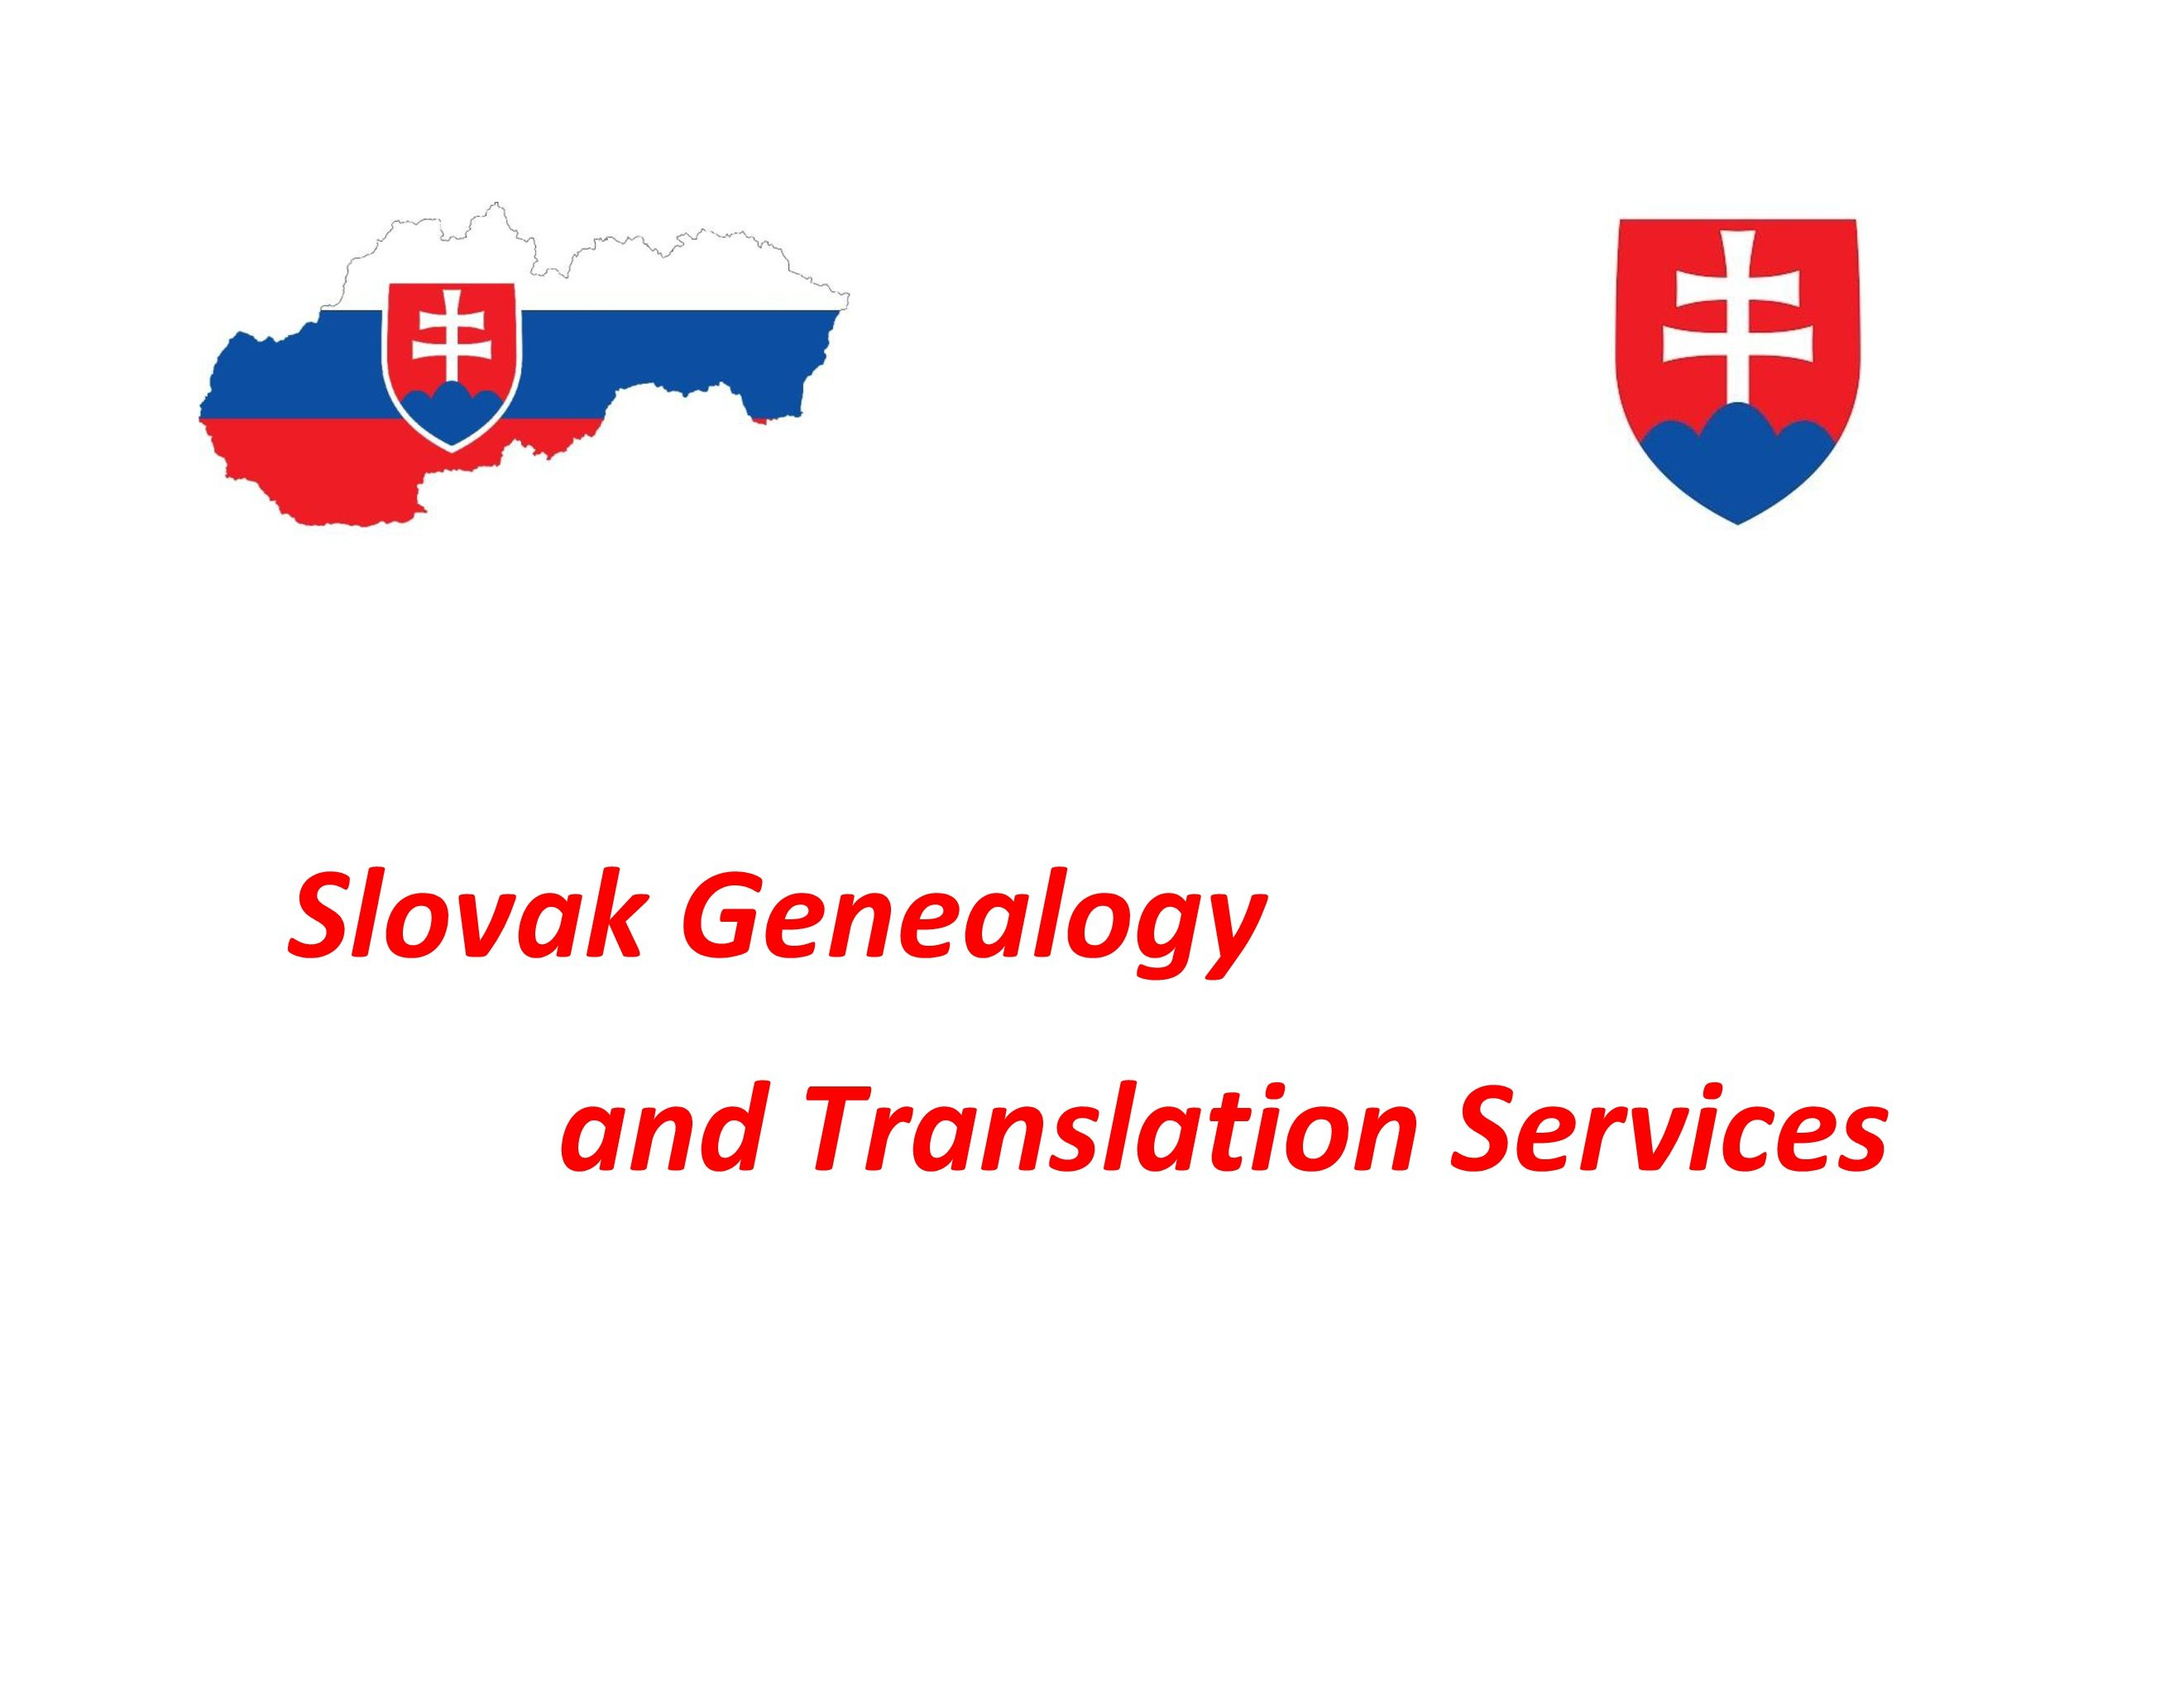 Slovak Genealogy and Translation Services - FAQ